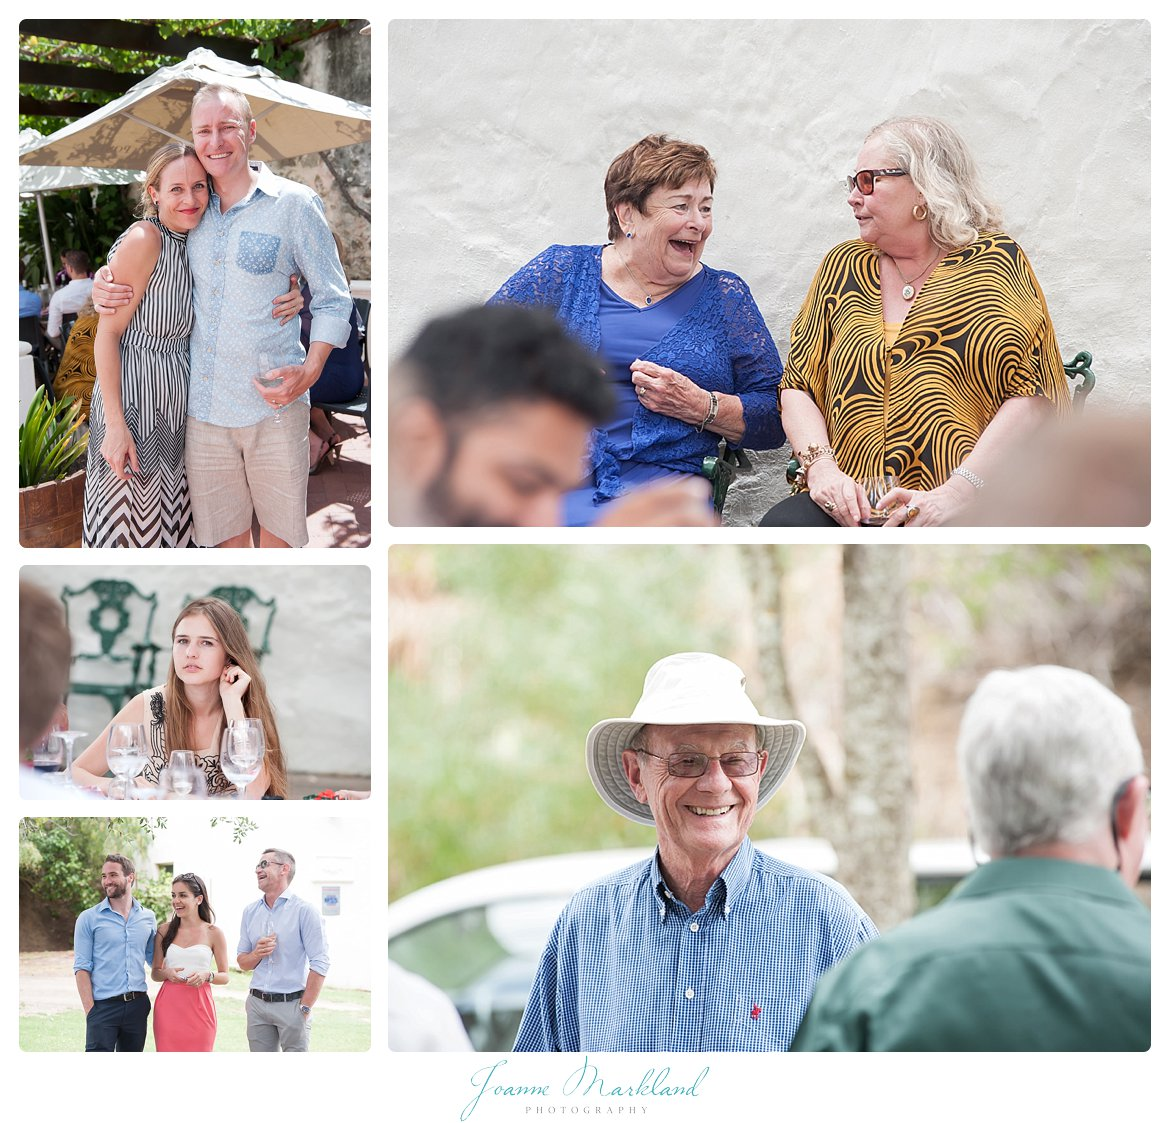 Grootepost-wedding-photography-joanne-markland-027